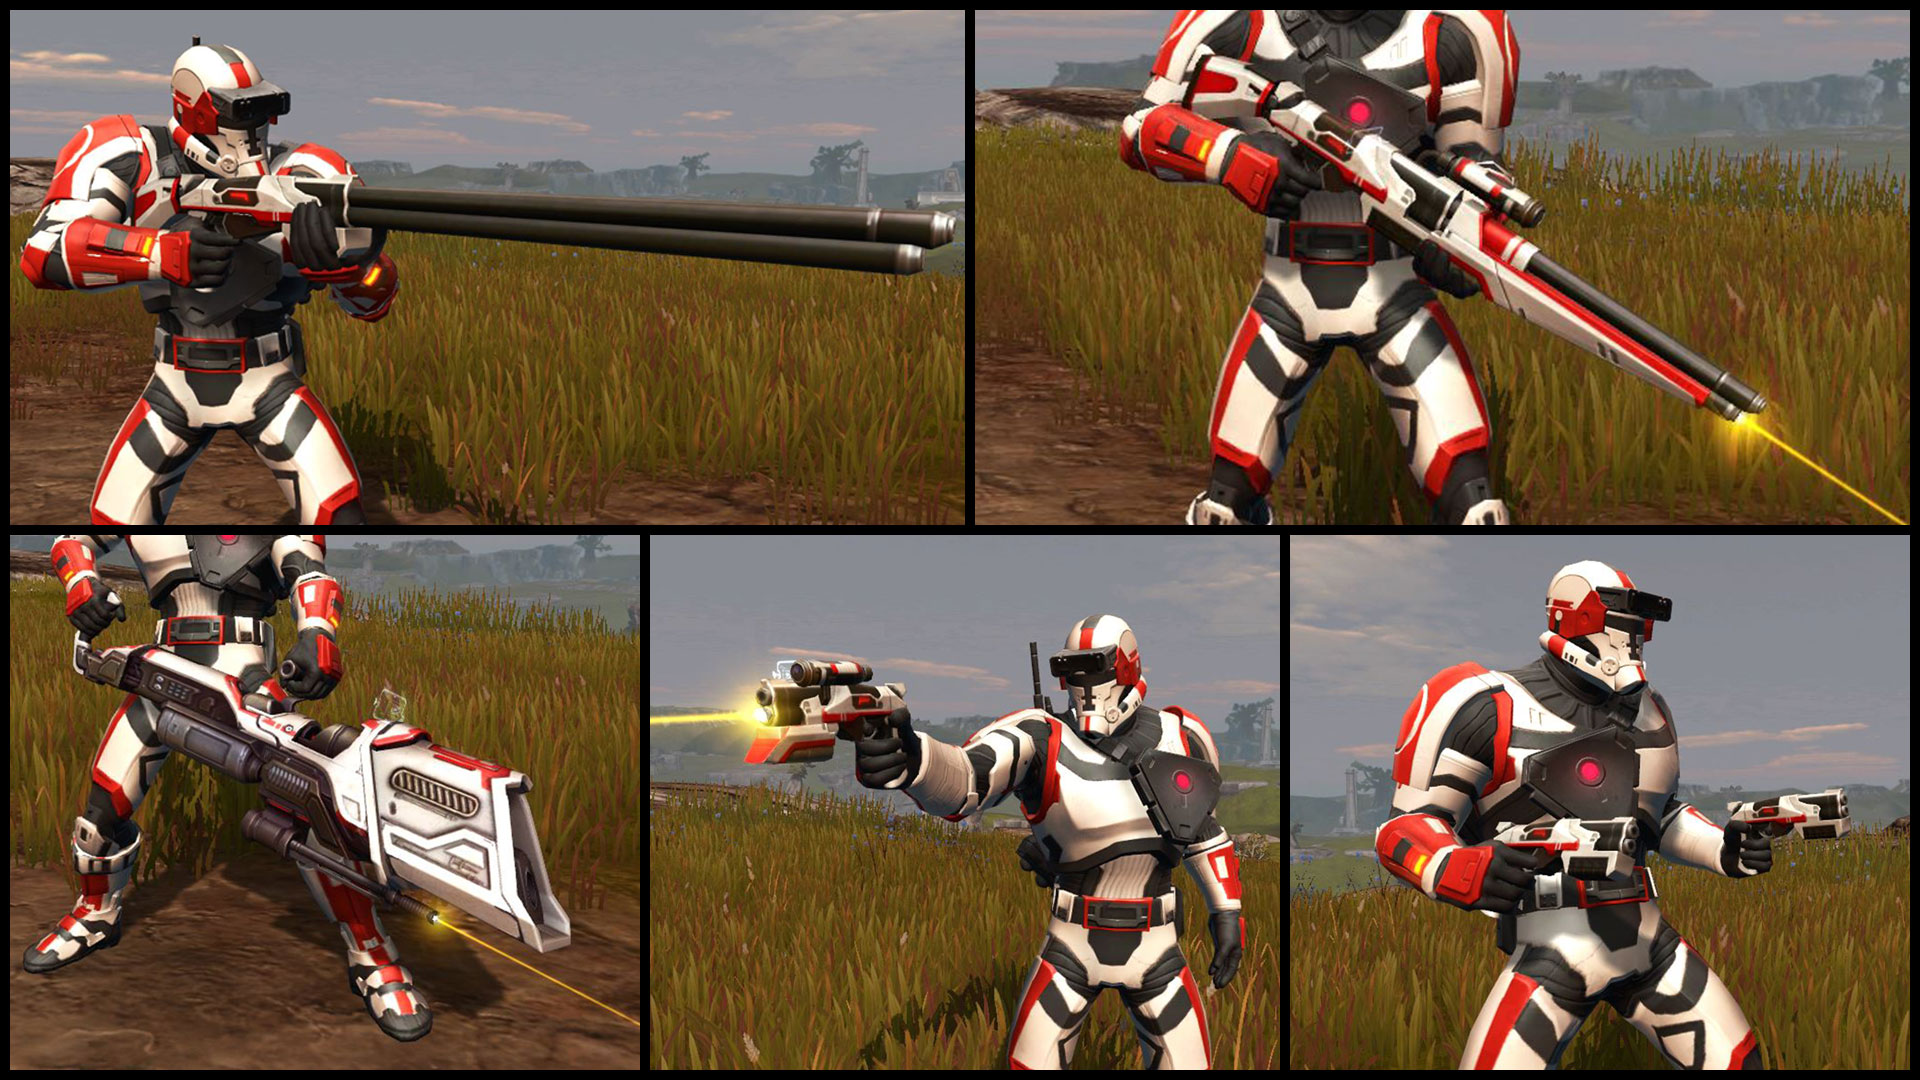 Legacy of the Sith combat styles example.